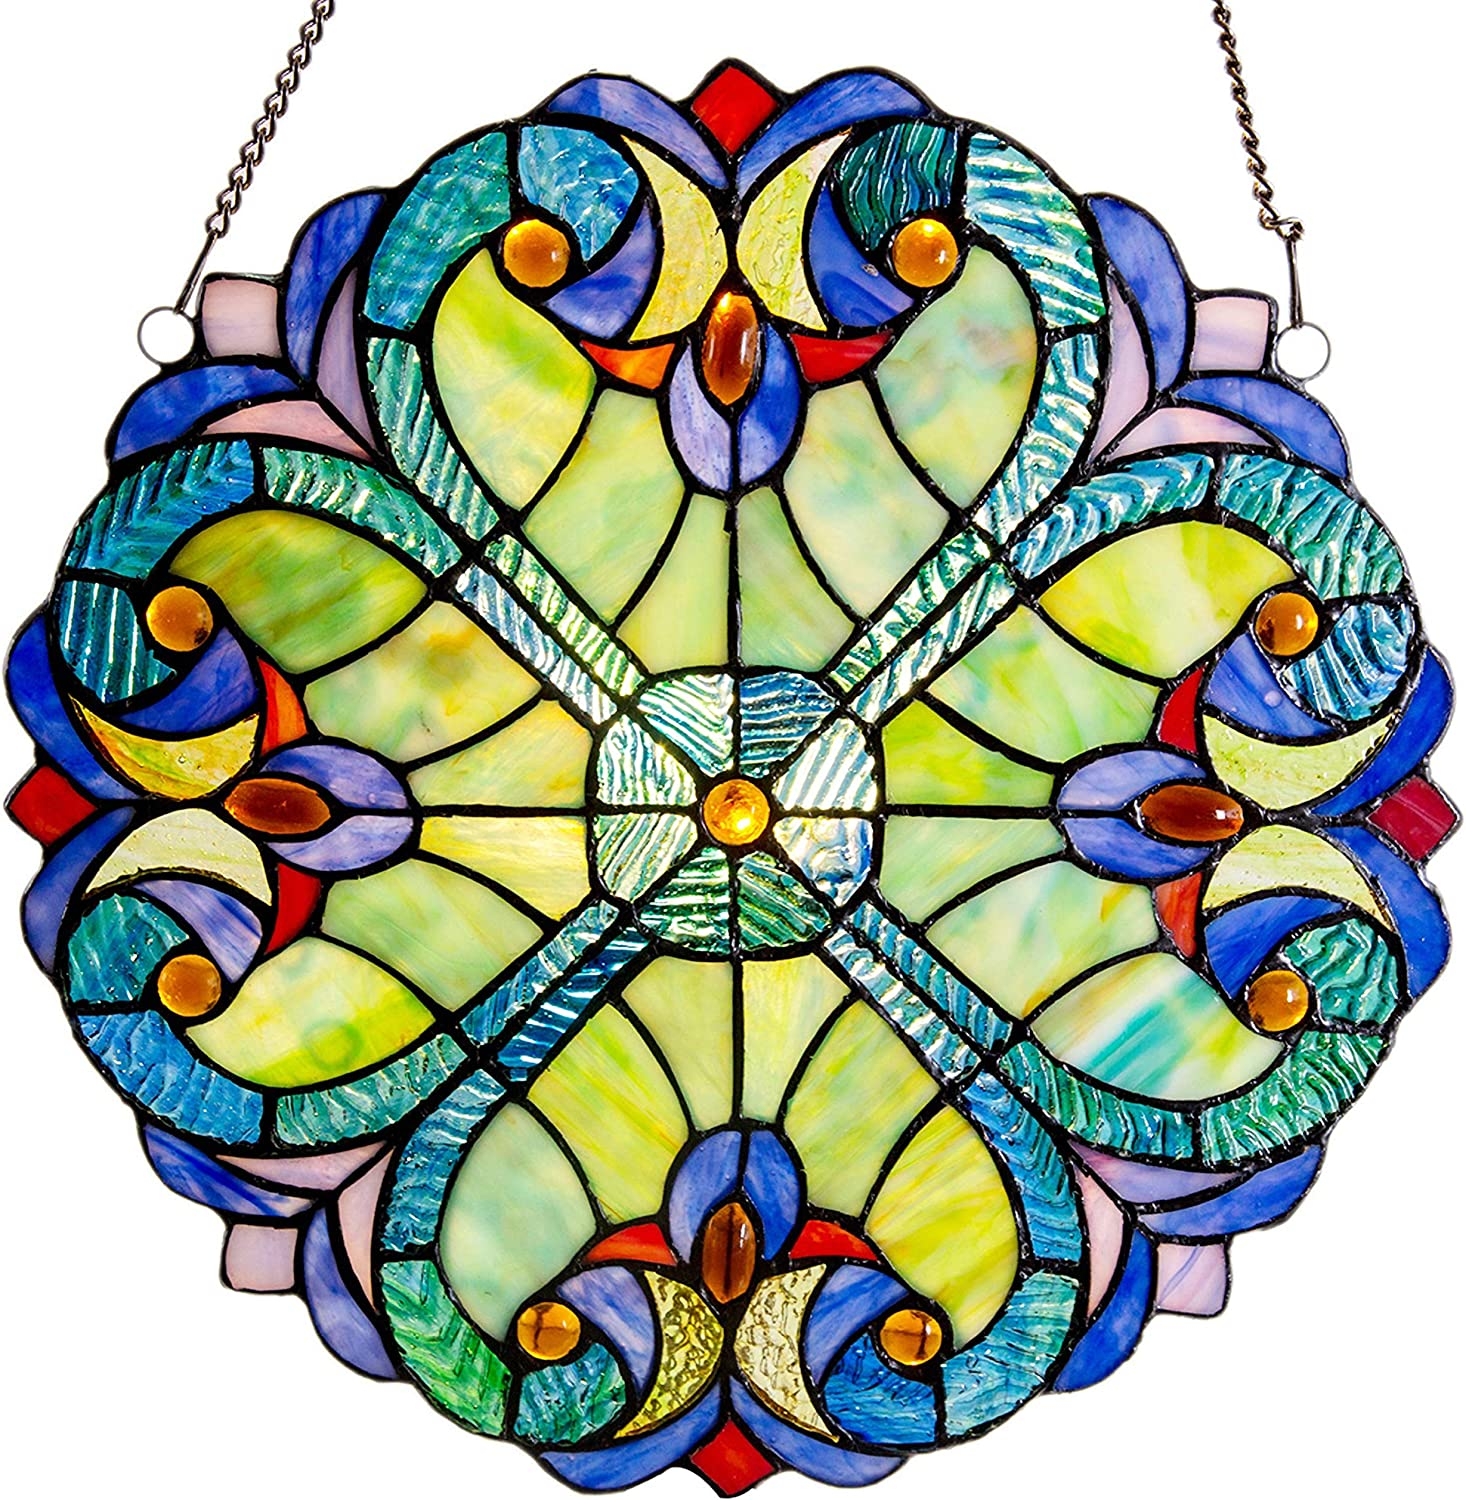 The Flash stained glass sun catcher